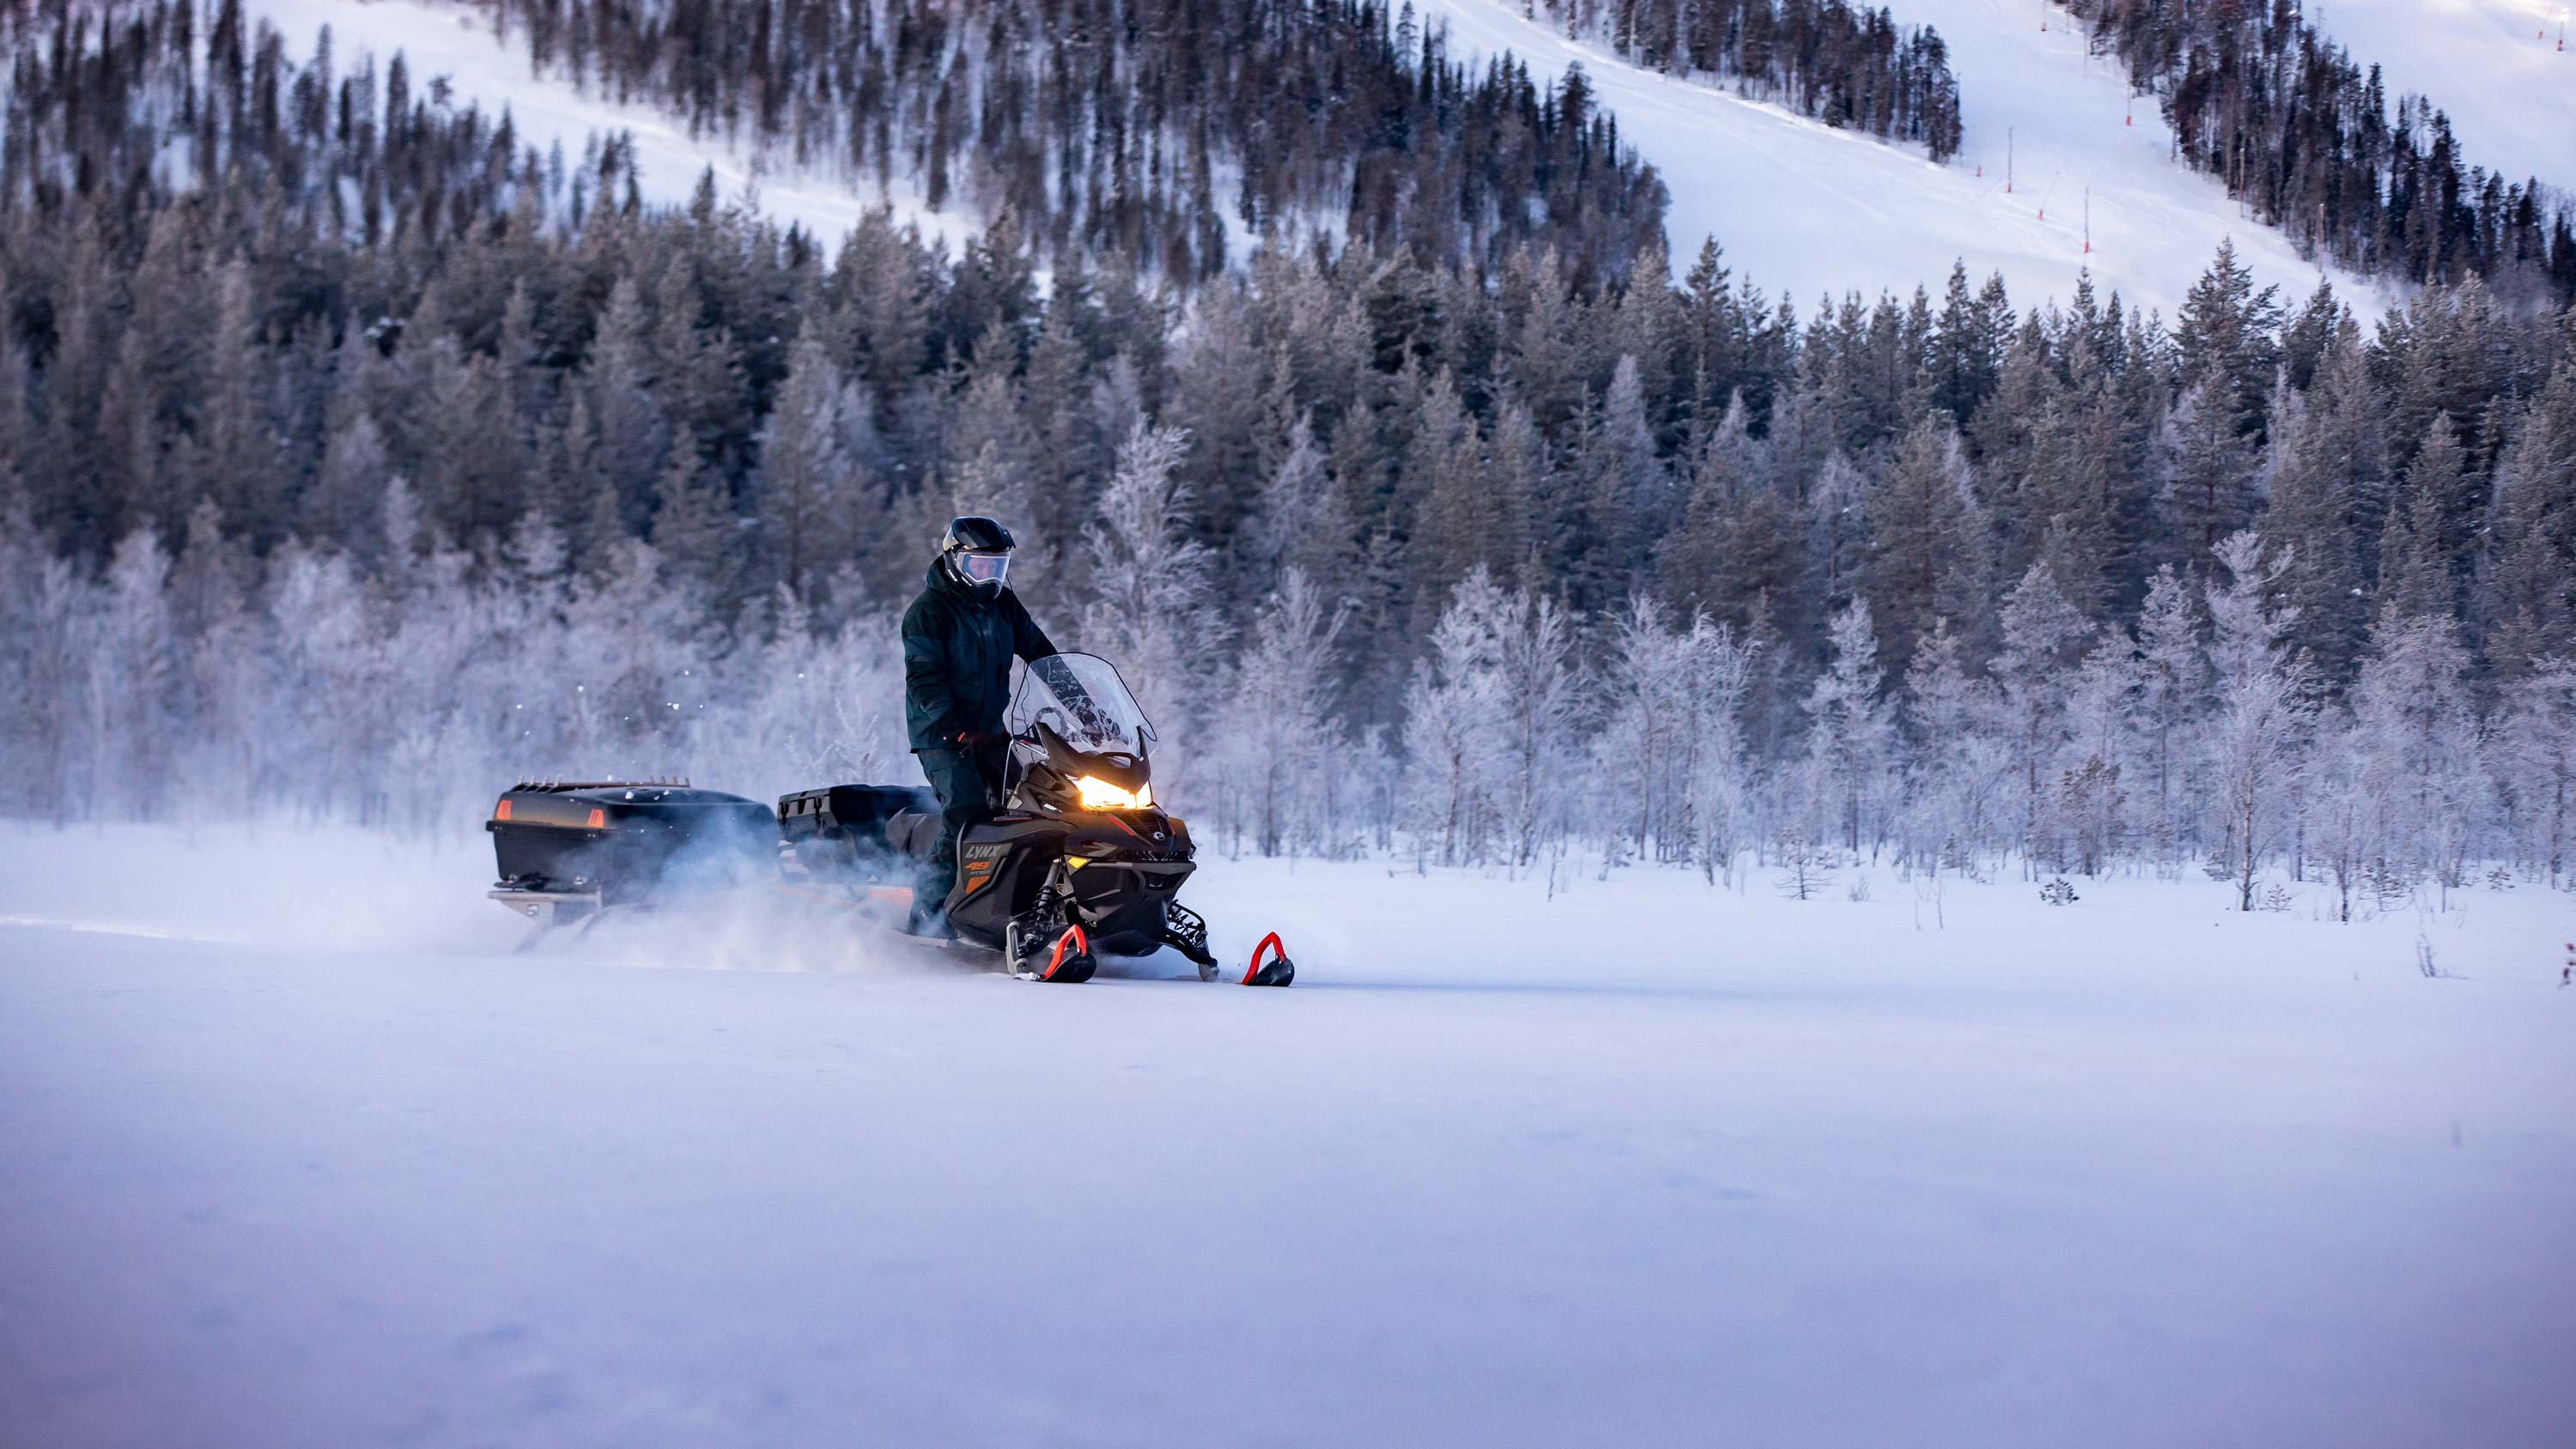 Lynx 49 Ranger snowmobile riding with LinQ Carrier sledge